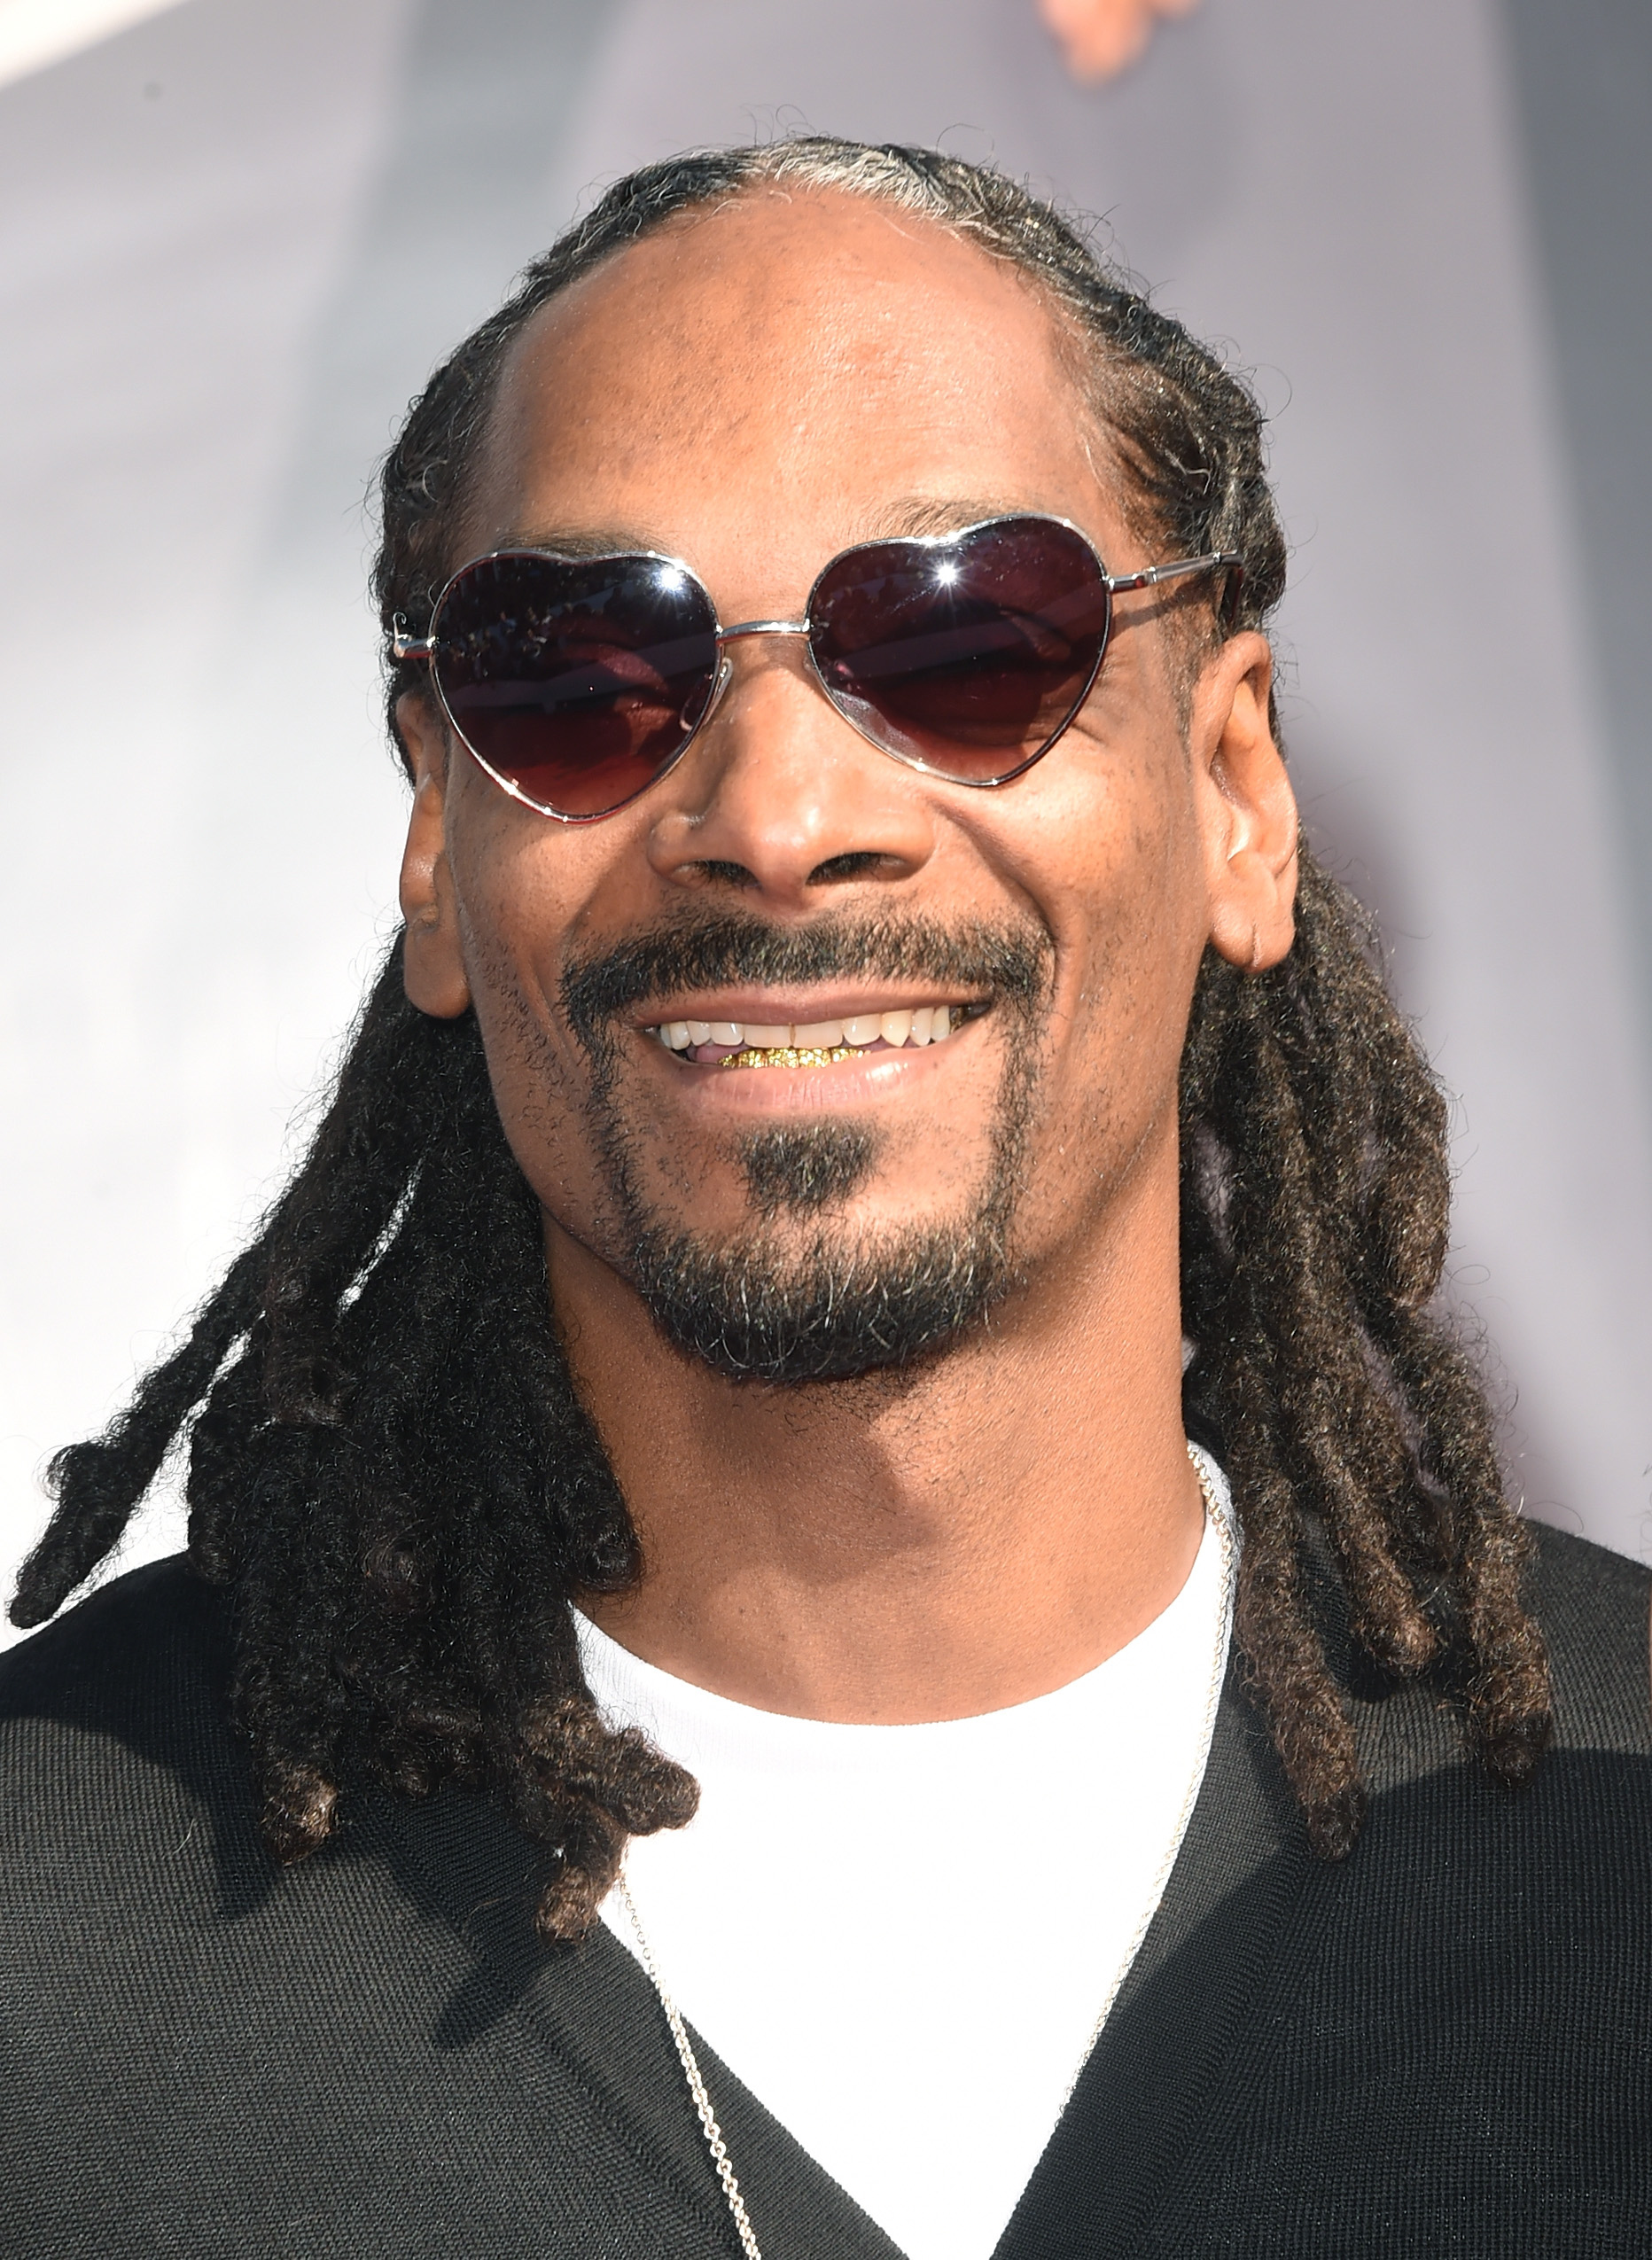 Snoop Dogg Responds To Rumors Of Long Beach Crips Running Him Out The Hood